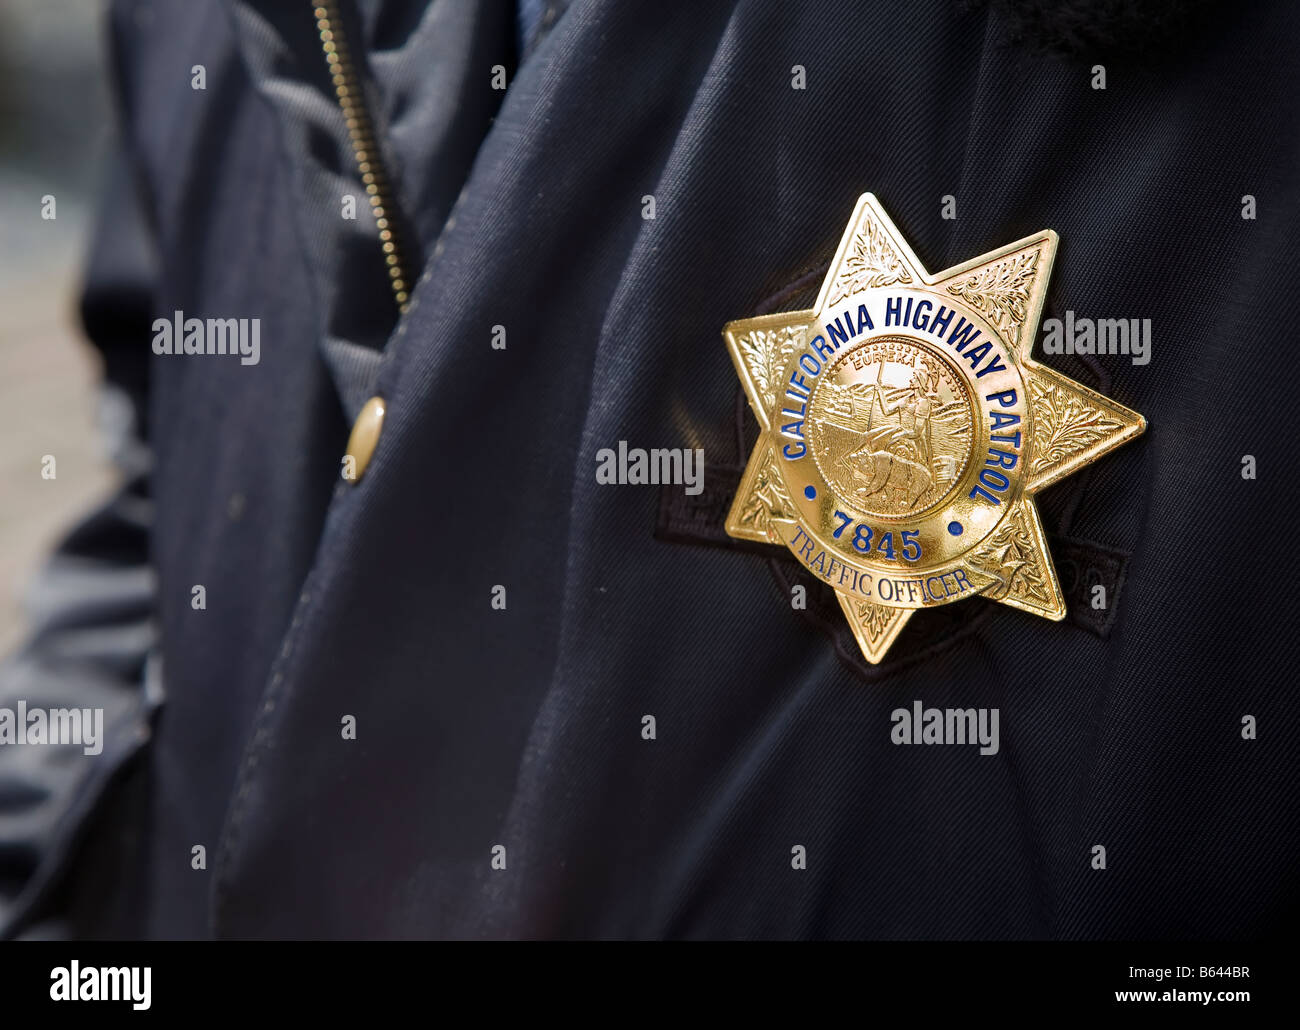 california highway patrol traffic officer police badge stock photo